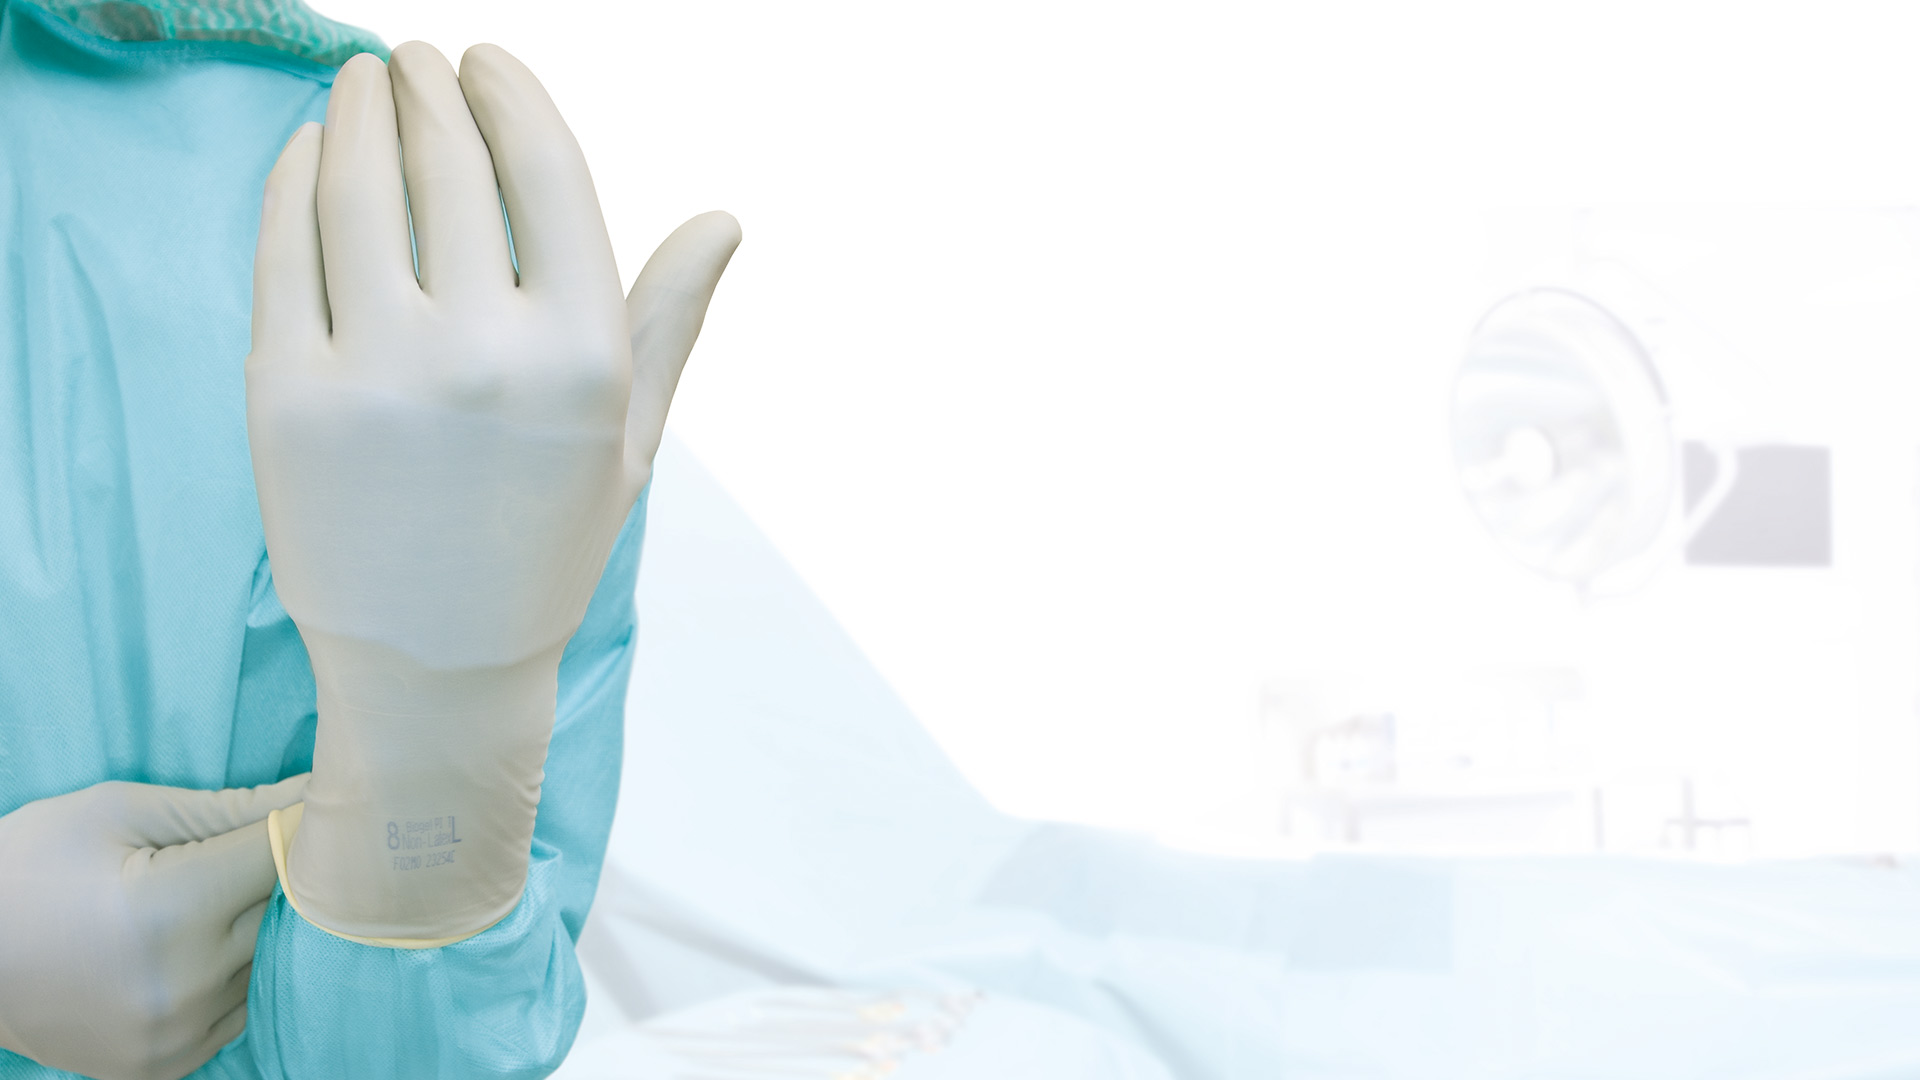 Healthcare professional wearing Biogel synthetic gloves